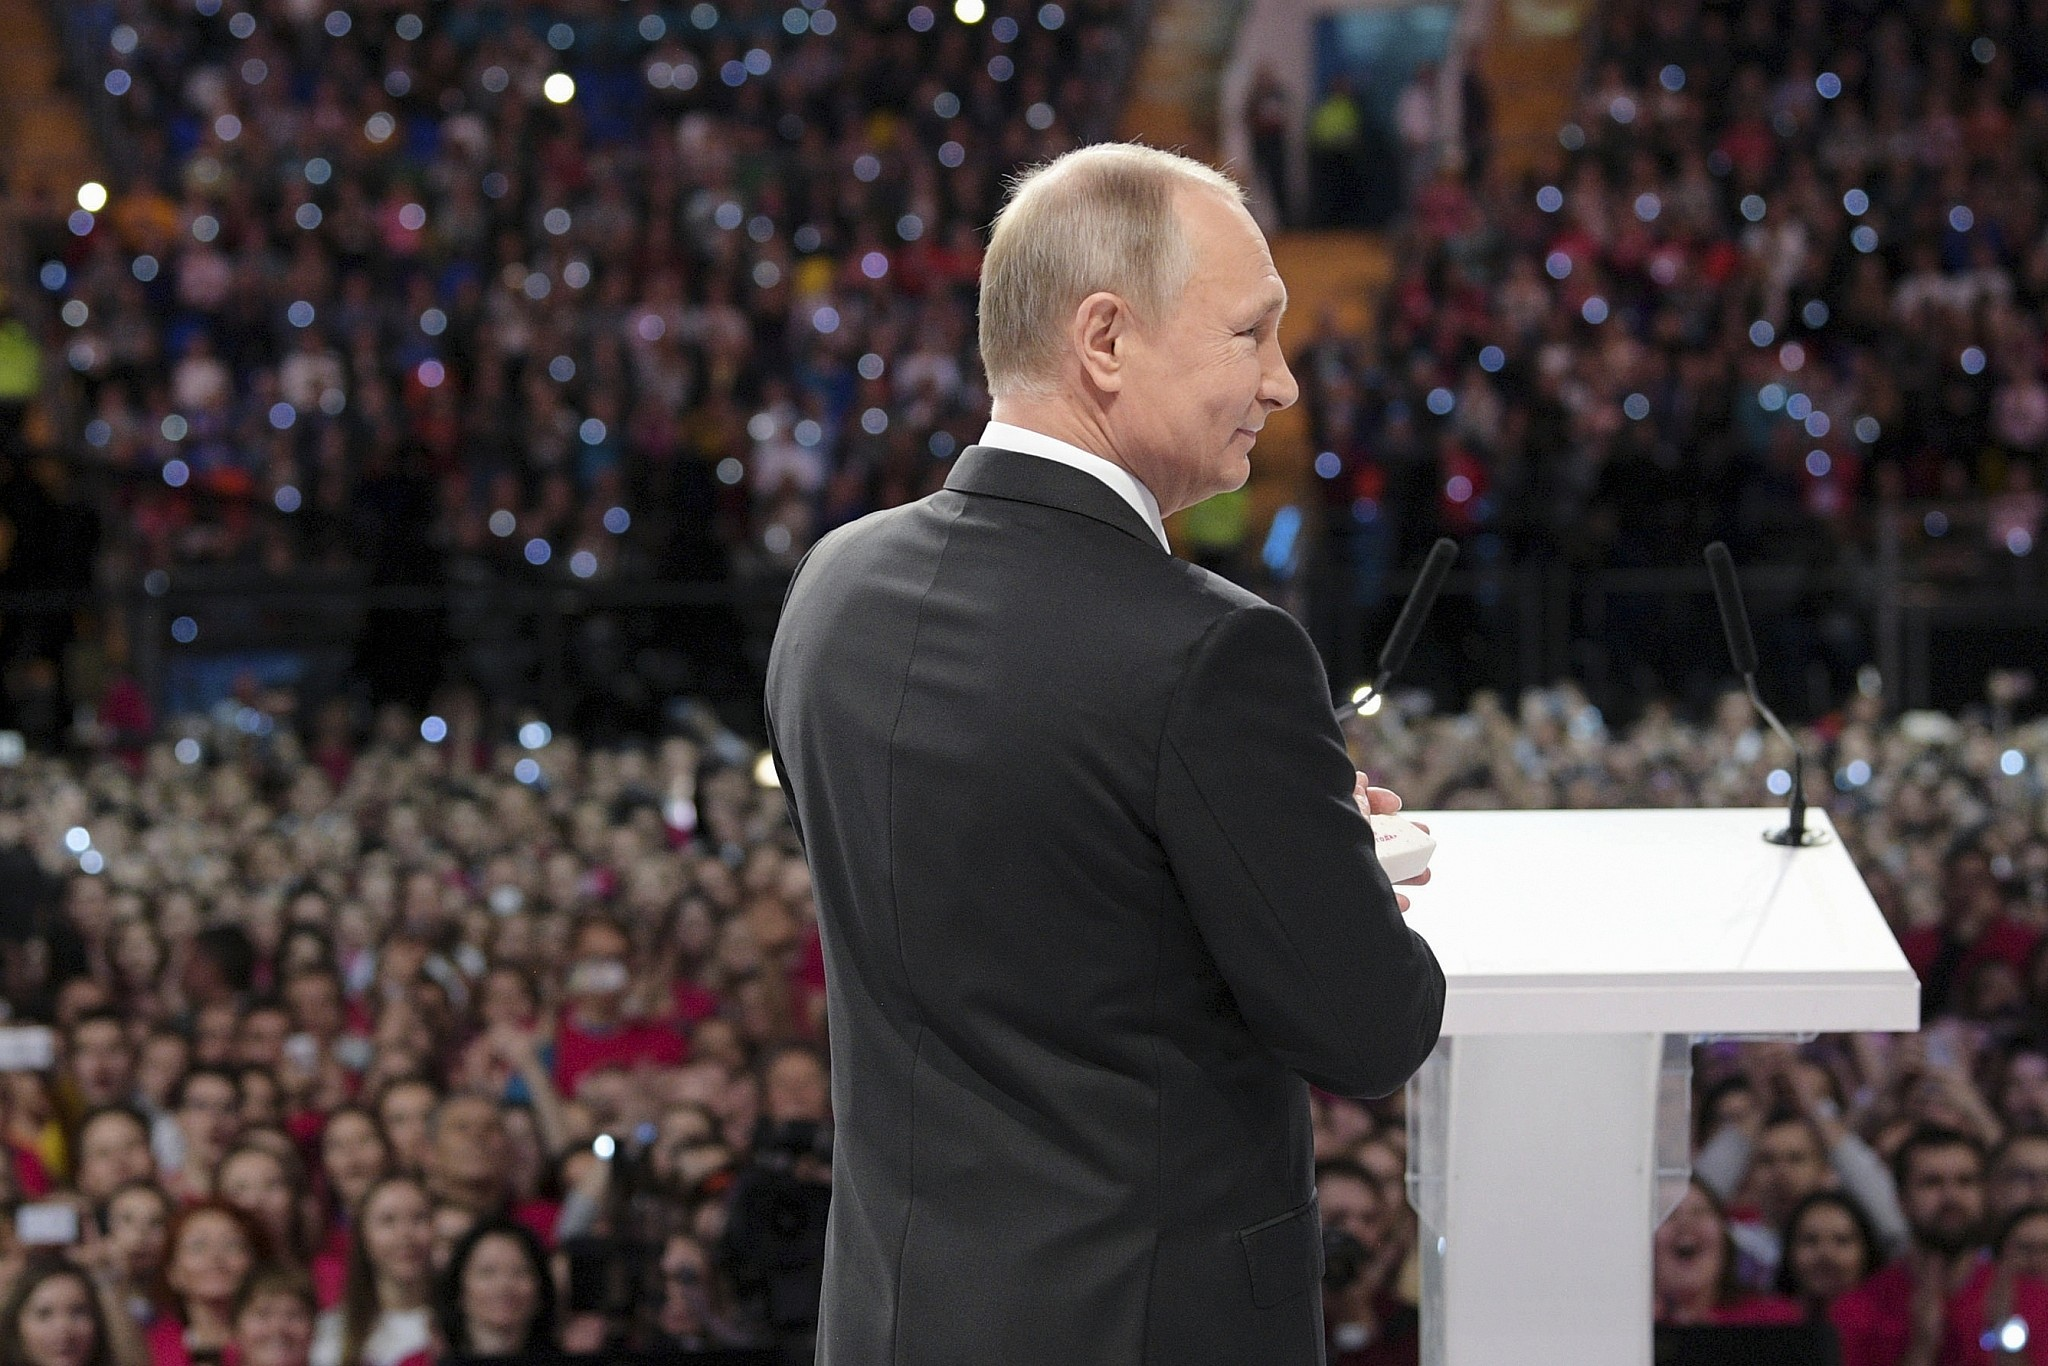 Zyuganov announced participation in presidential elections